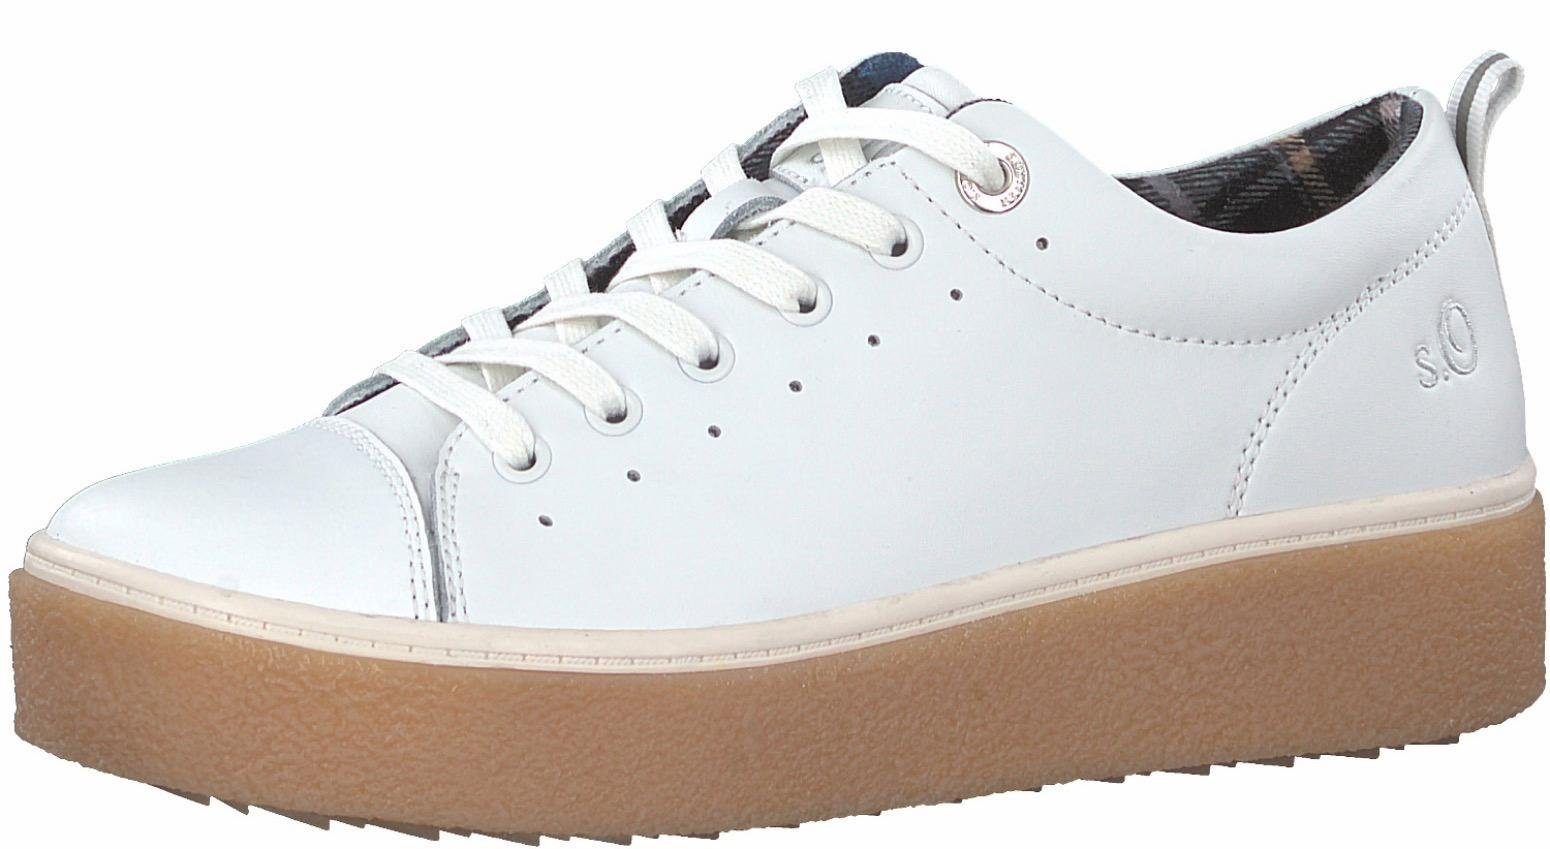 S.Oliver RED LABEL Sneakers weiß 8iYjihS0NK